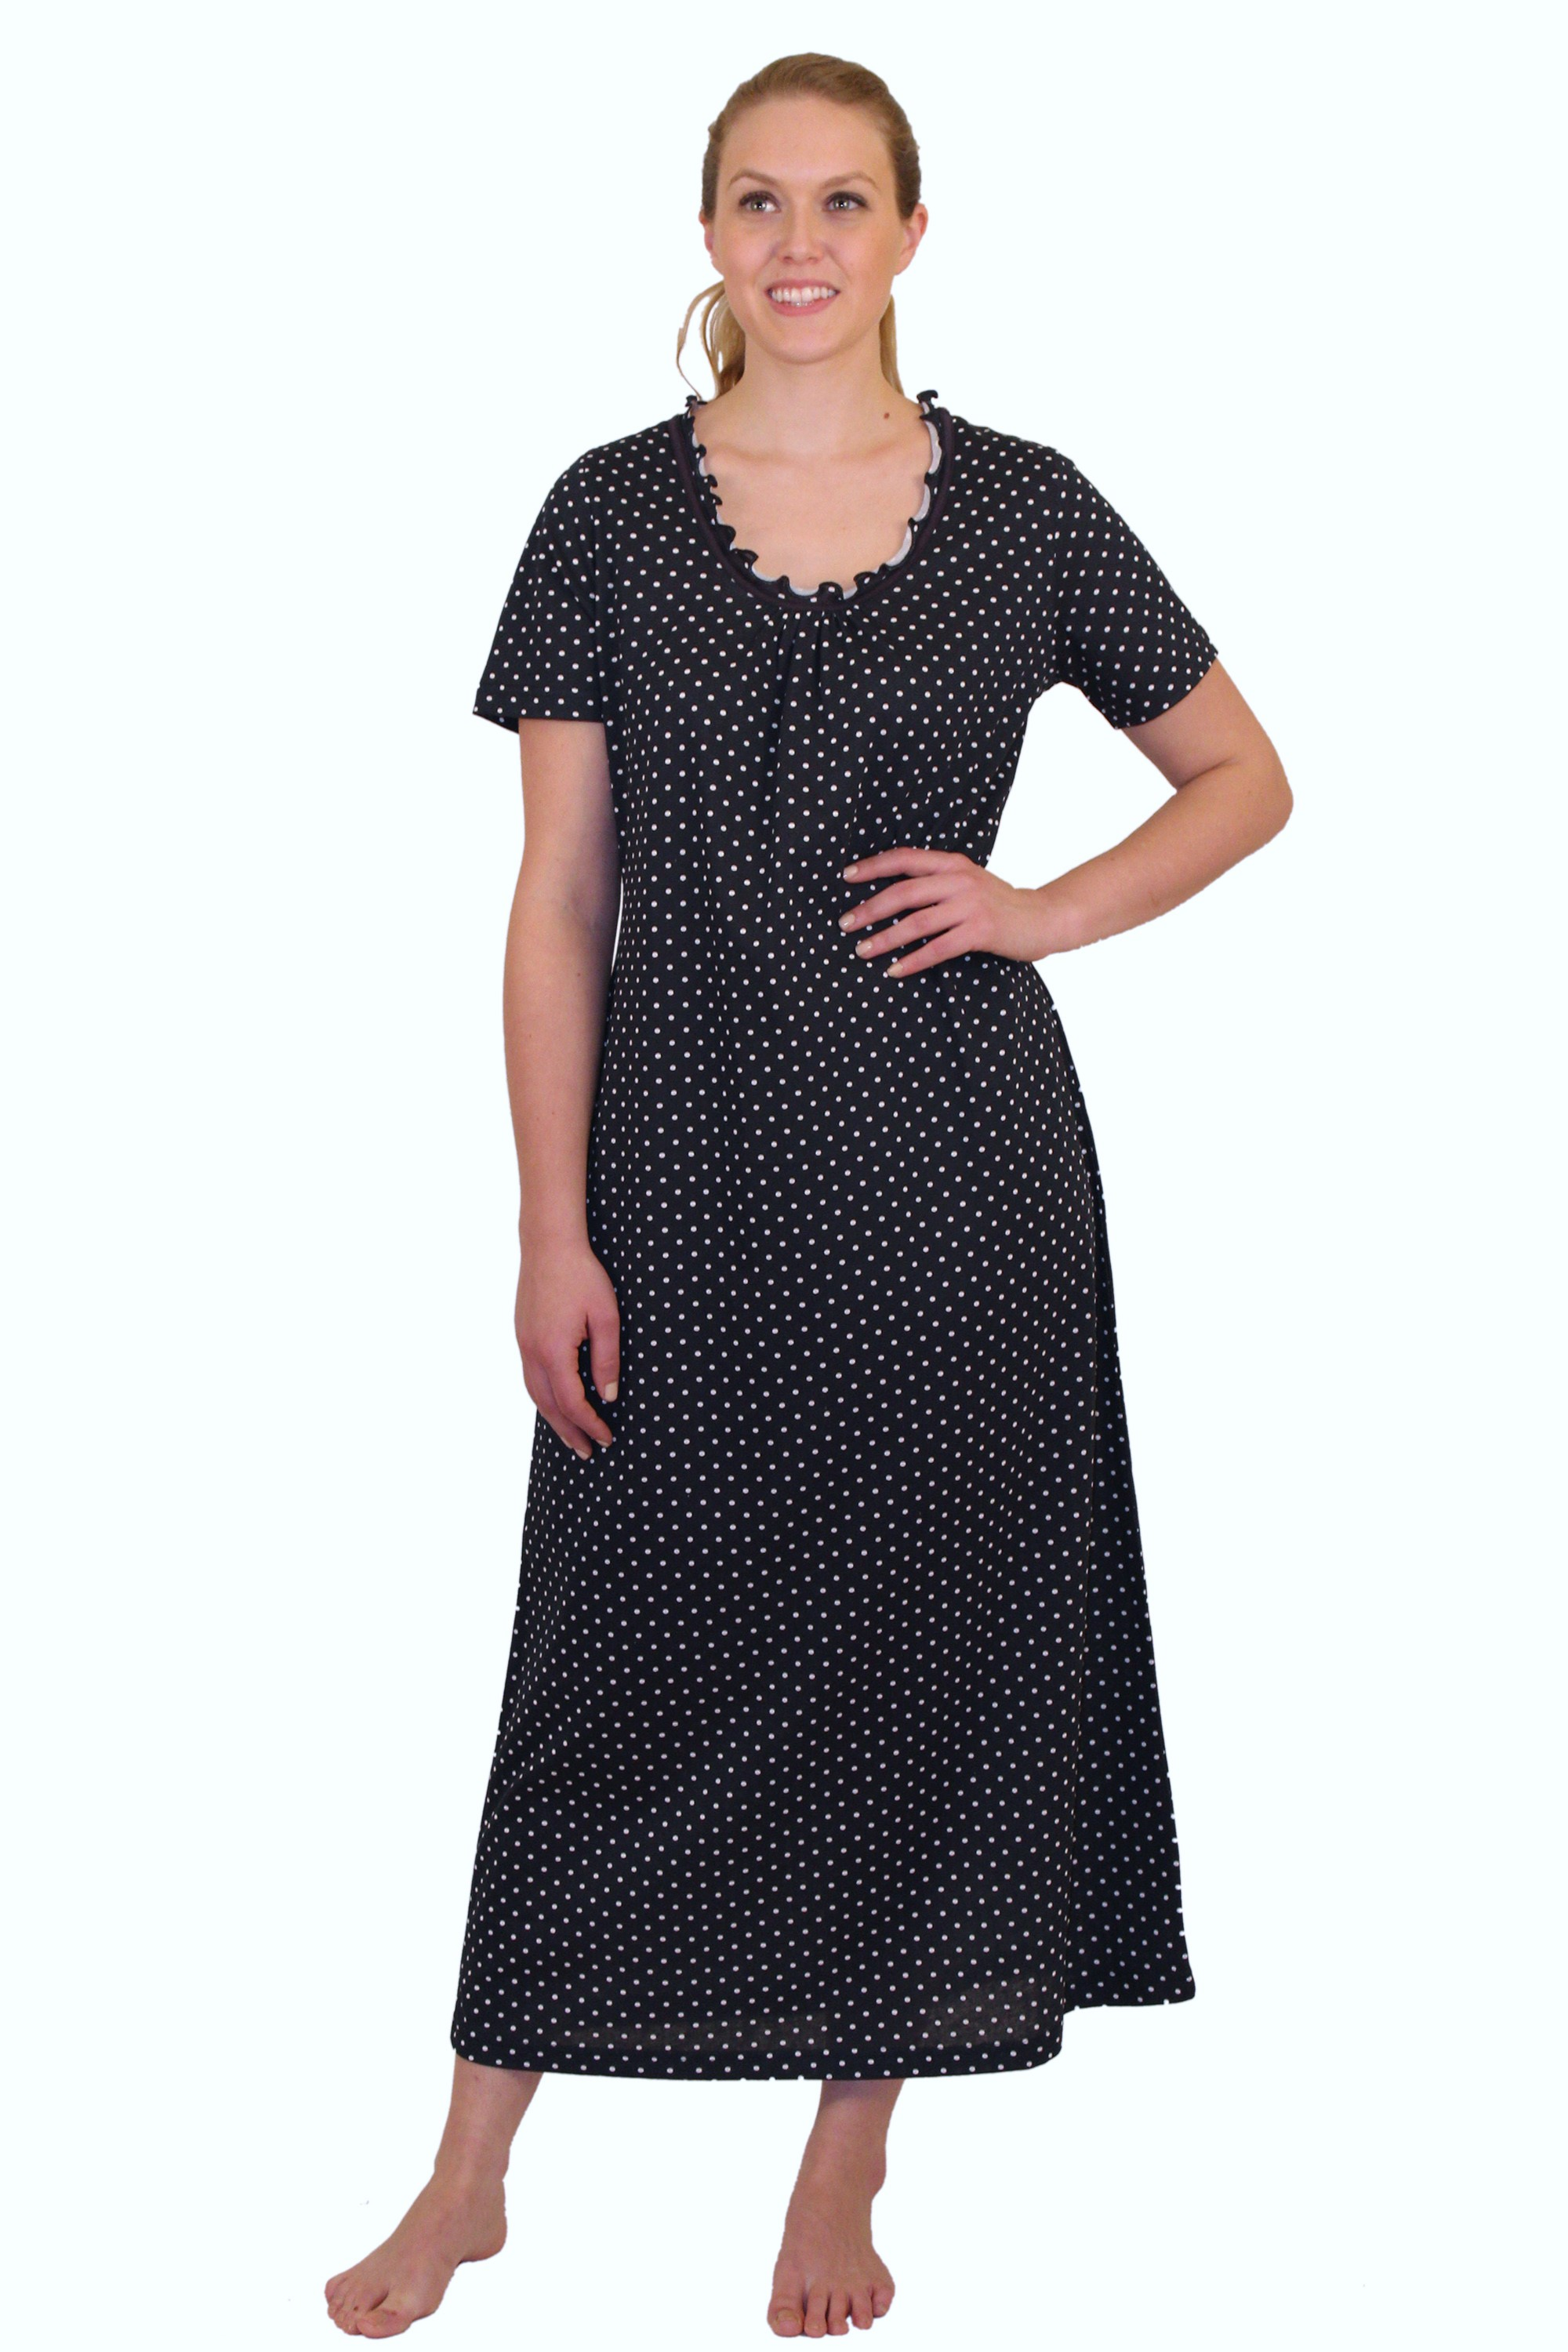 ApparelNY Cotton Jersey Printed Night Shirt-Gown 52 Length $15.99